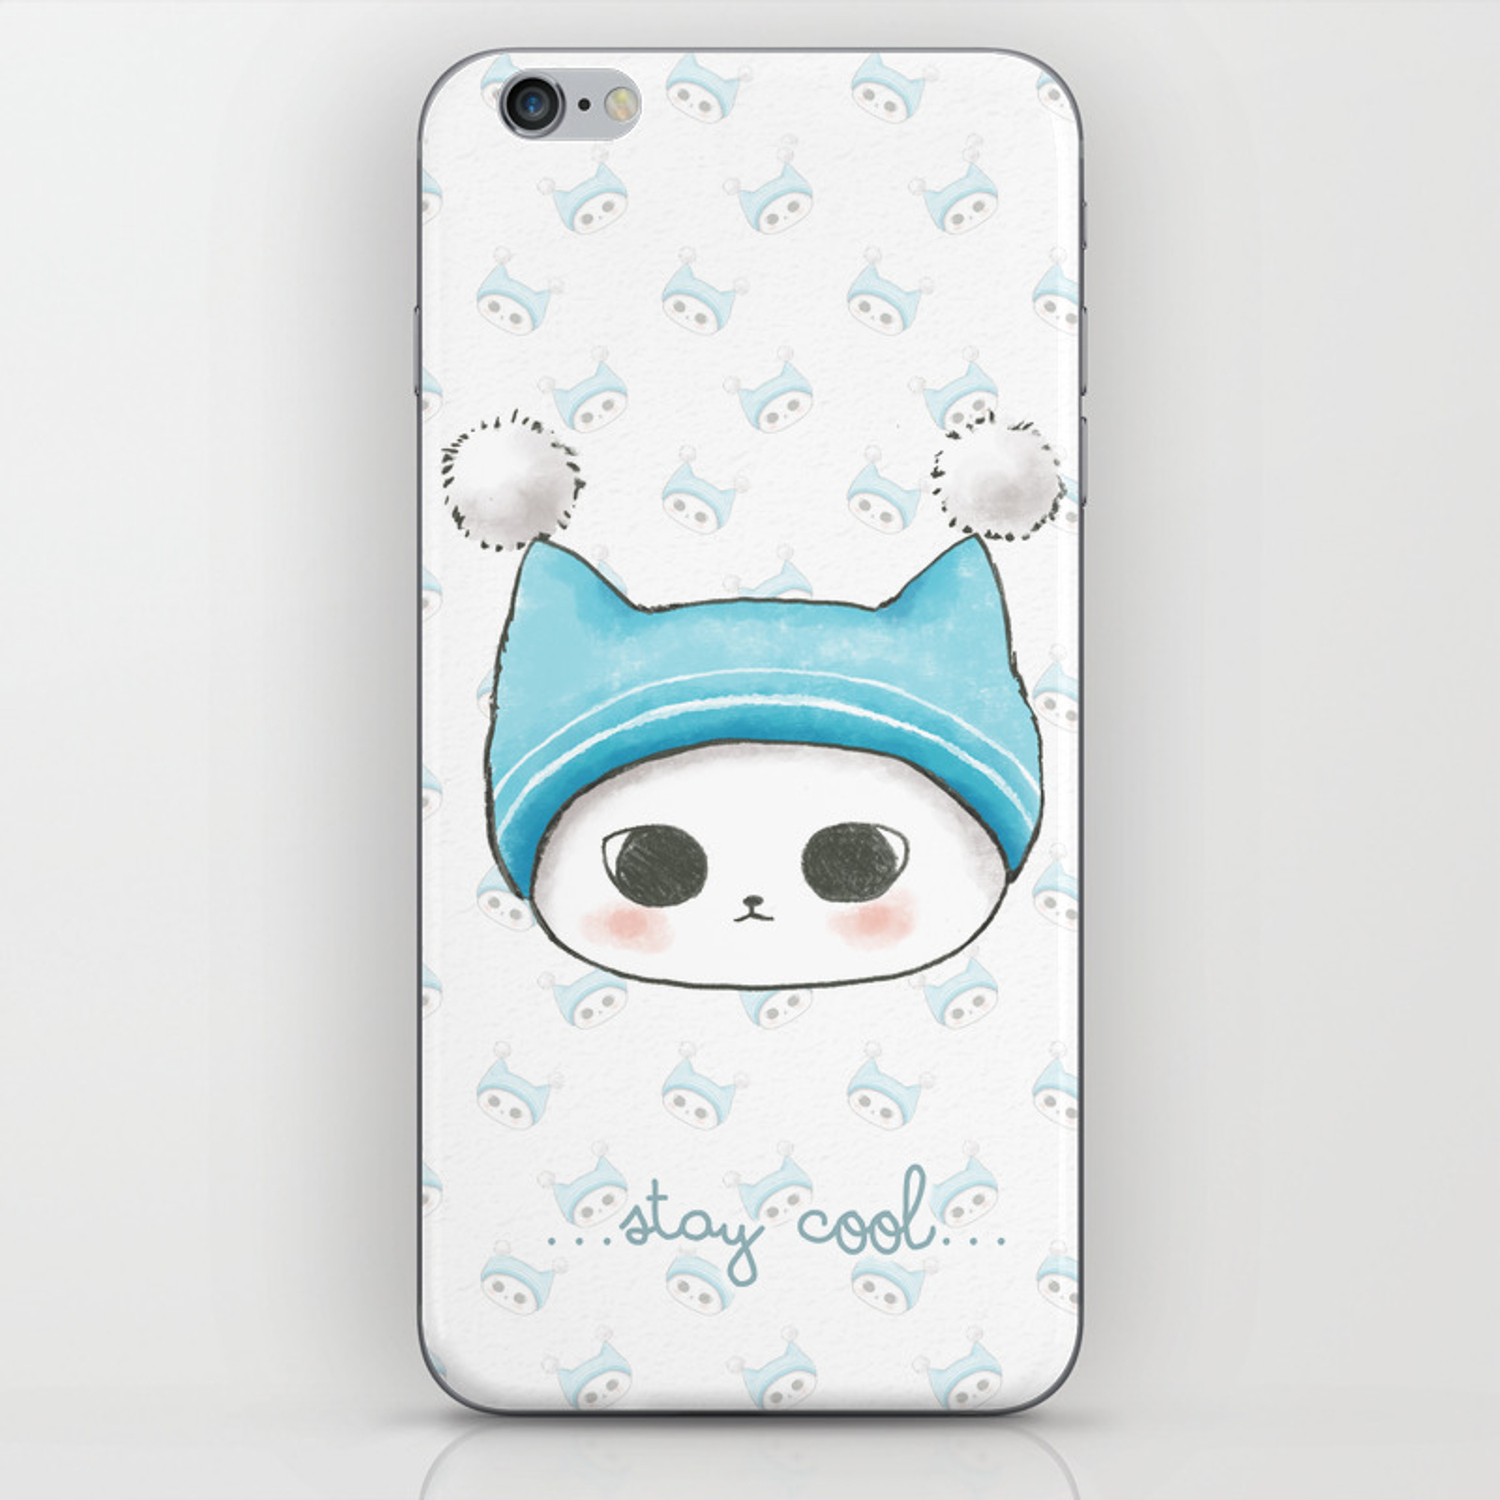 stay cool catbackground wallpaper phone skin